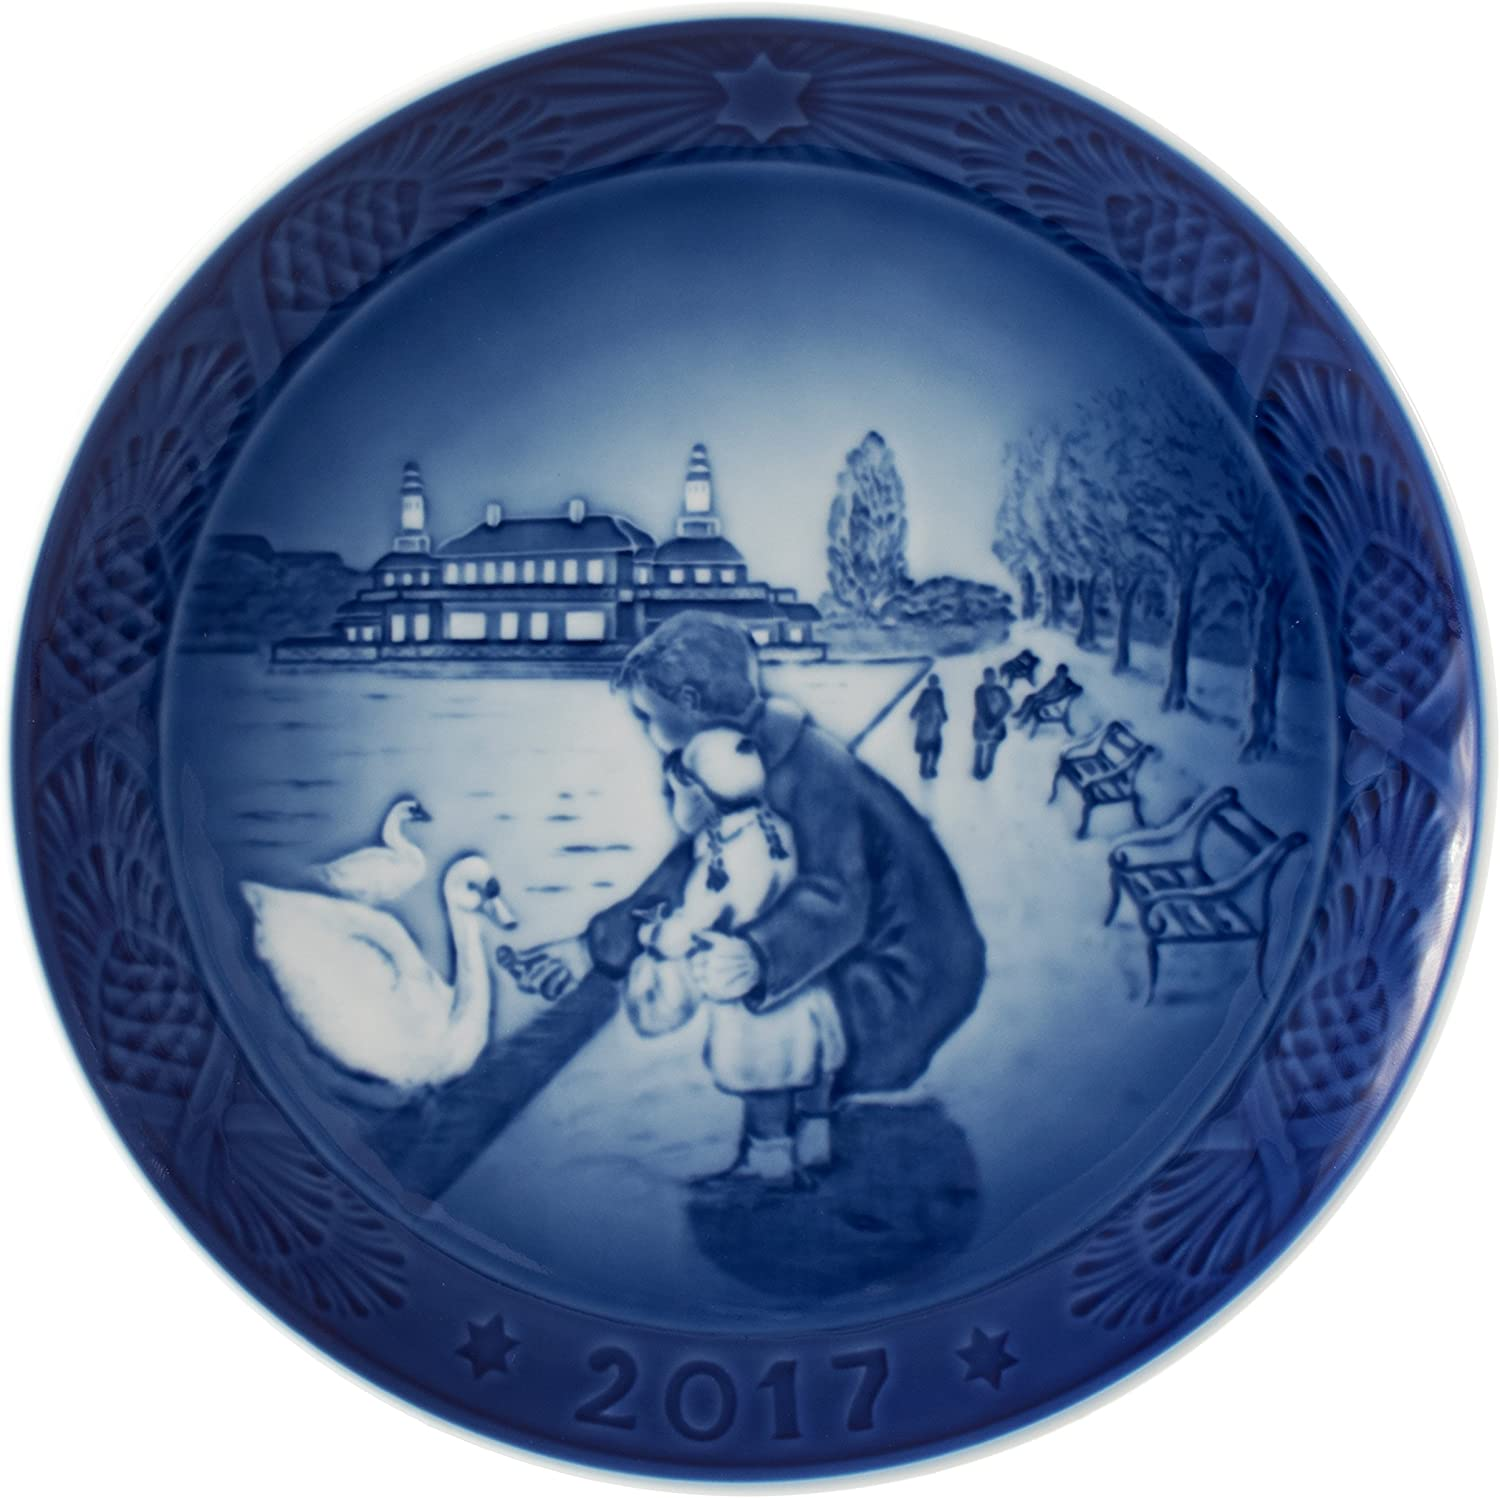 Royal Copenhagen 1021105 Christmas Plate 2017, By the Lake